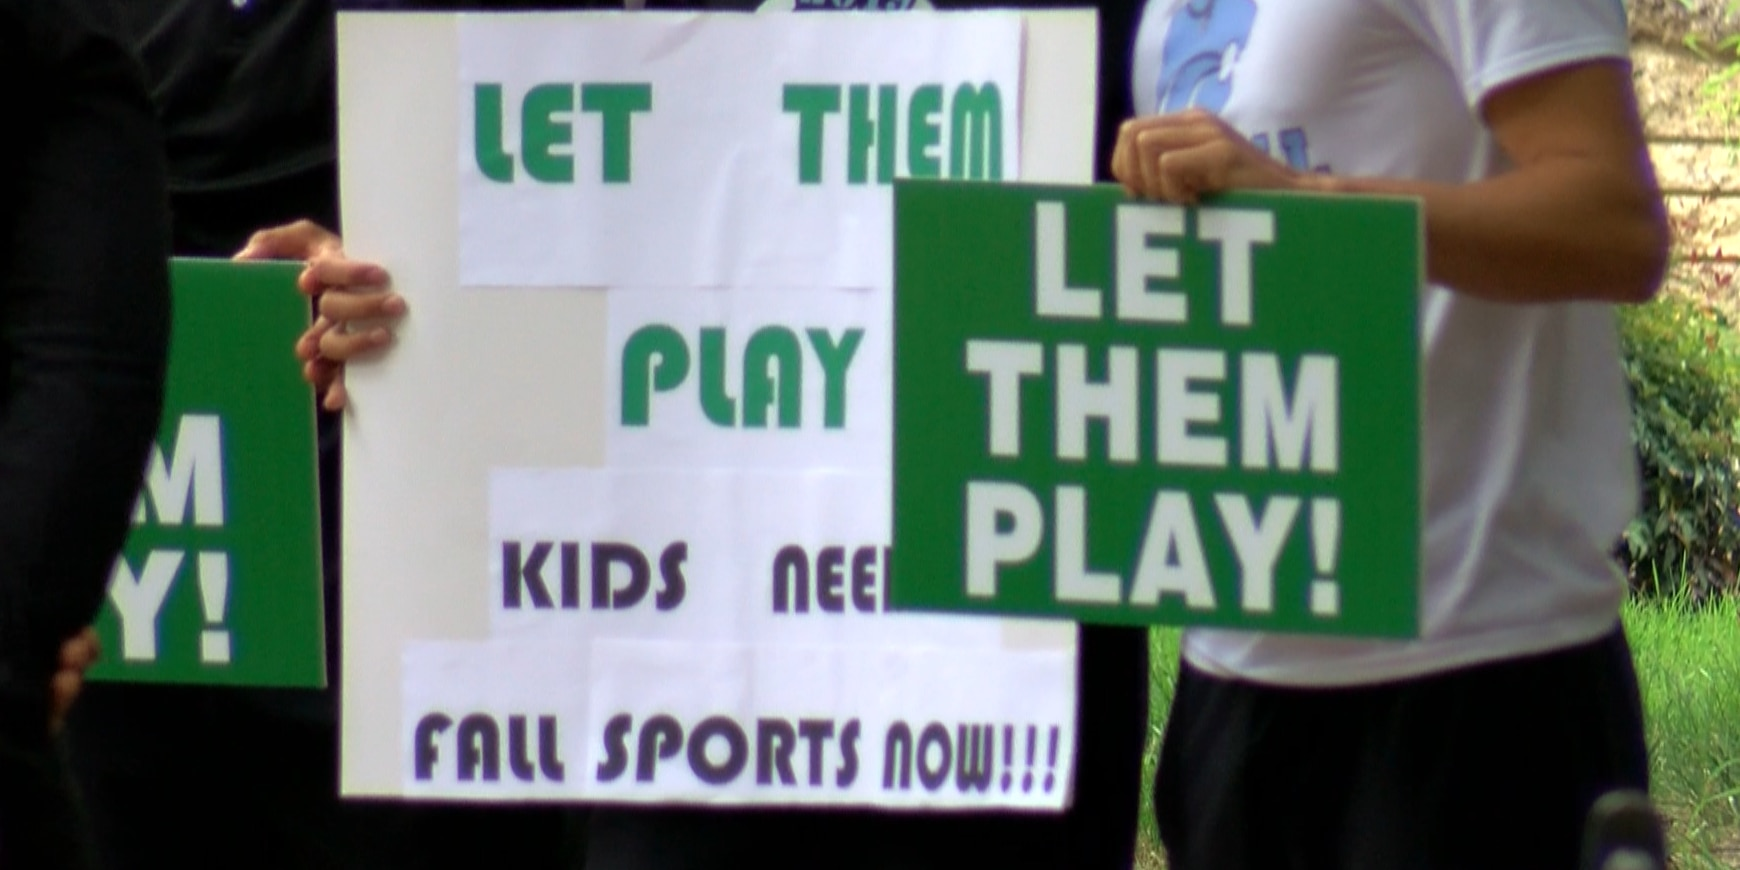 'Let them play!': Parents, student-athletes push for immediate return of fall sports